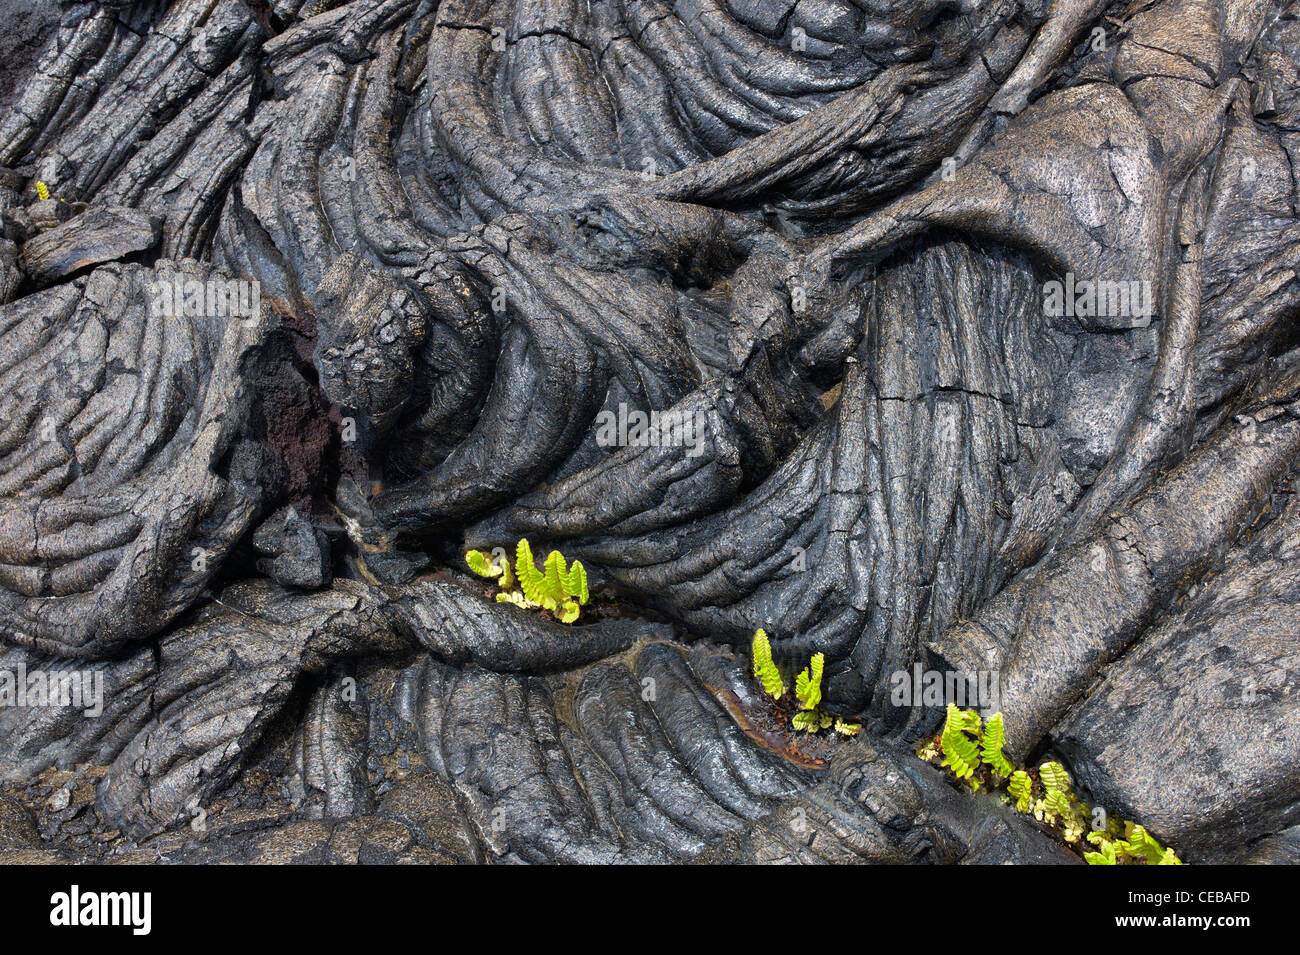 Pahoehoe lava and ferns Hawaii Volcanoes National Park, The Big Island. - Stock Image